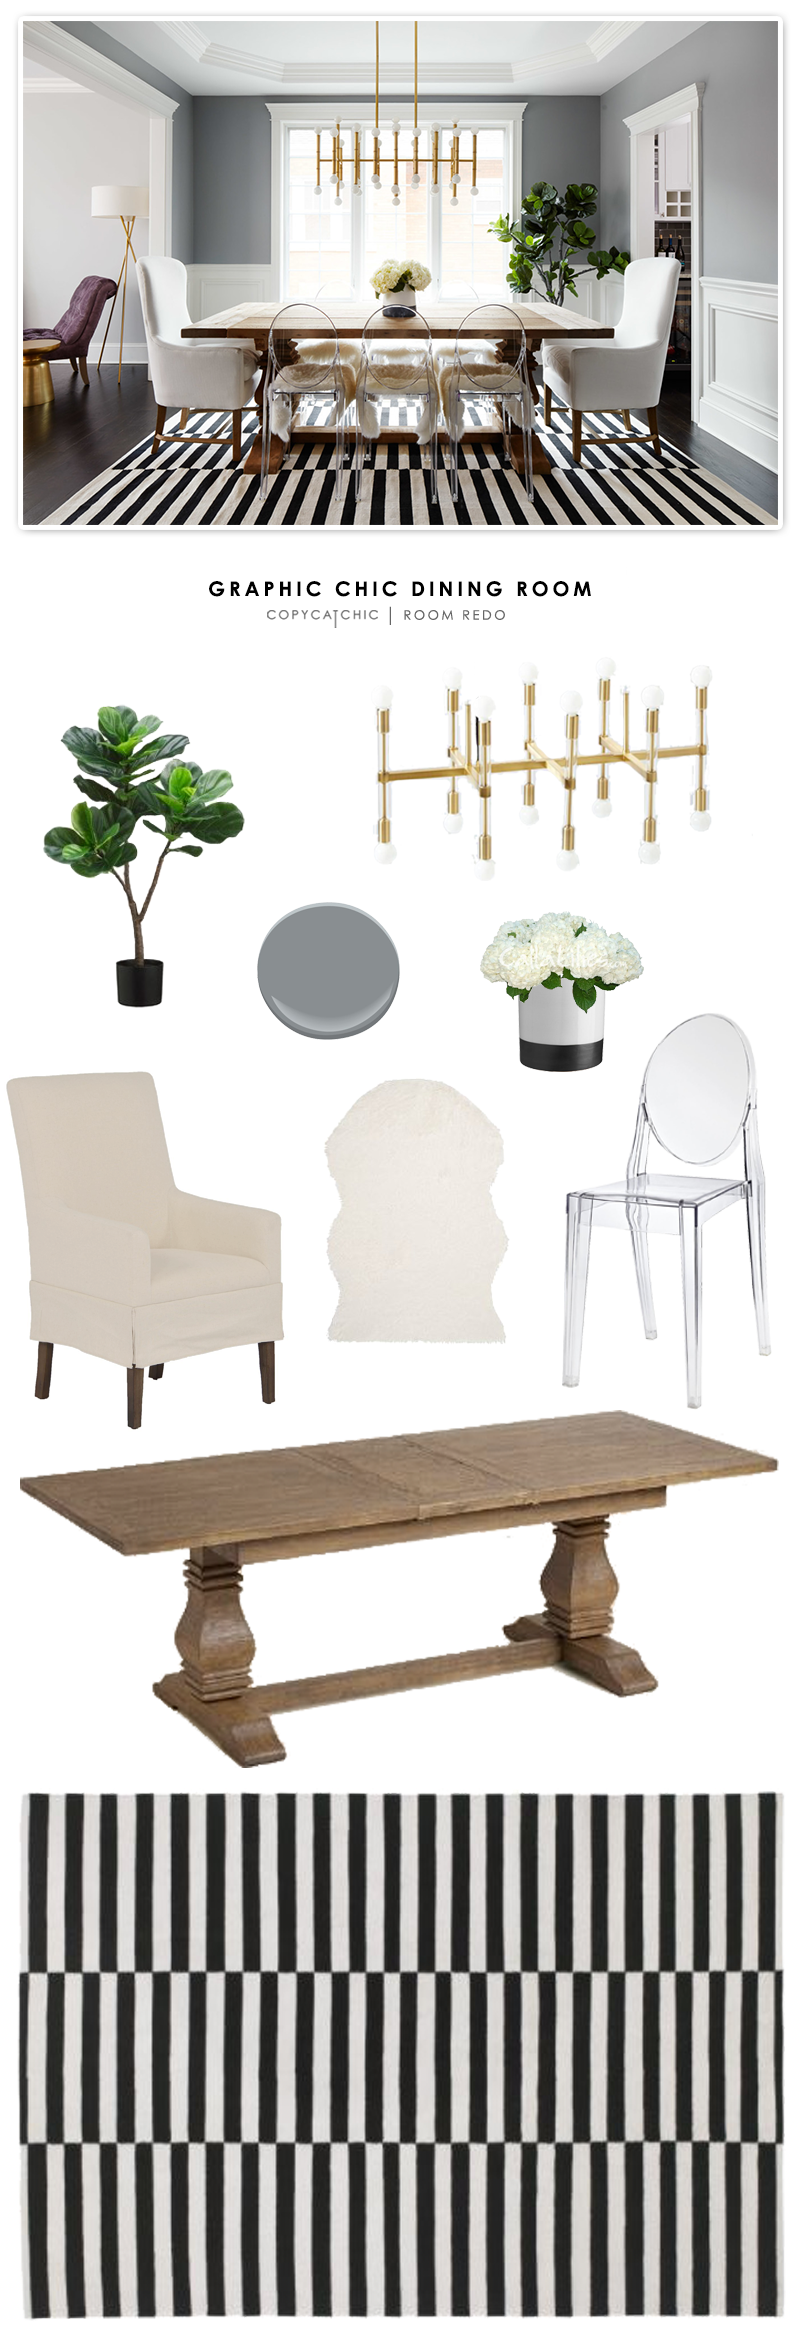 A graphic, chic dining room by Homepolish recreated for less by Copy Cat Chic